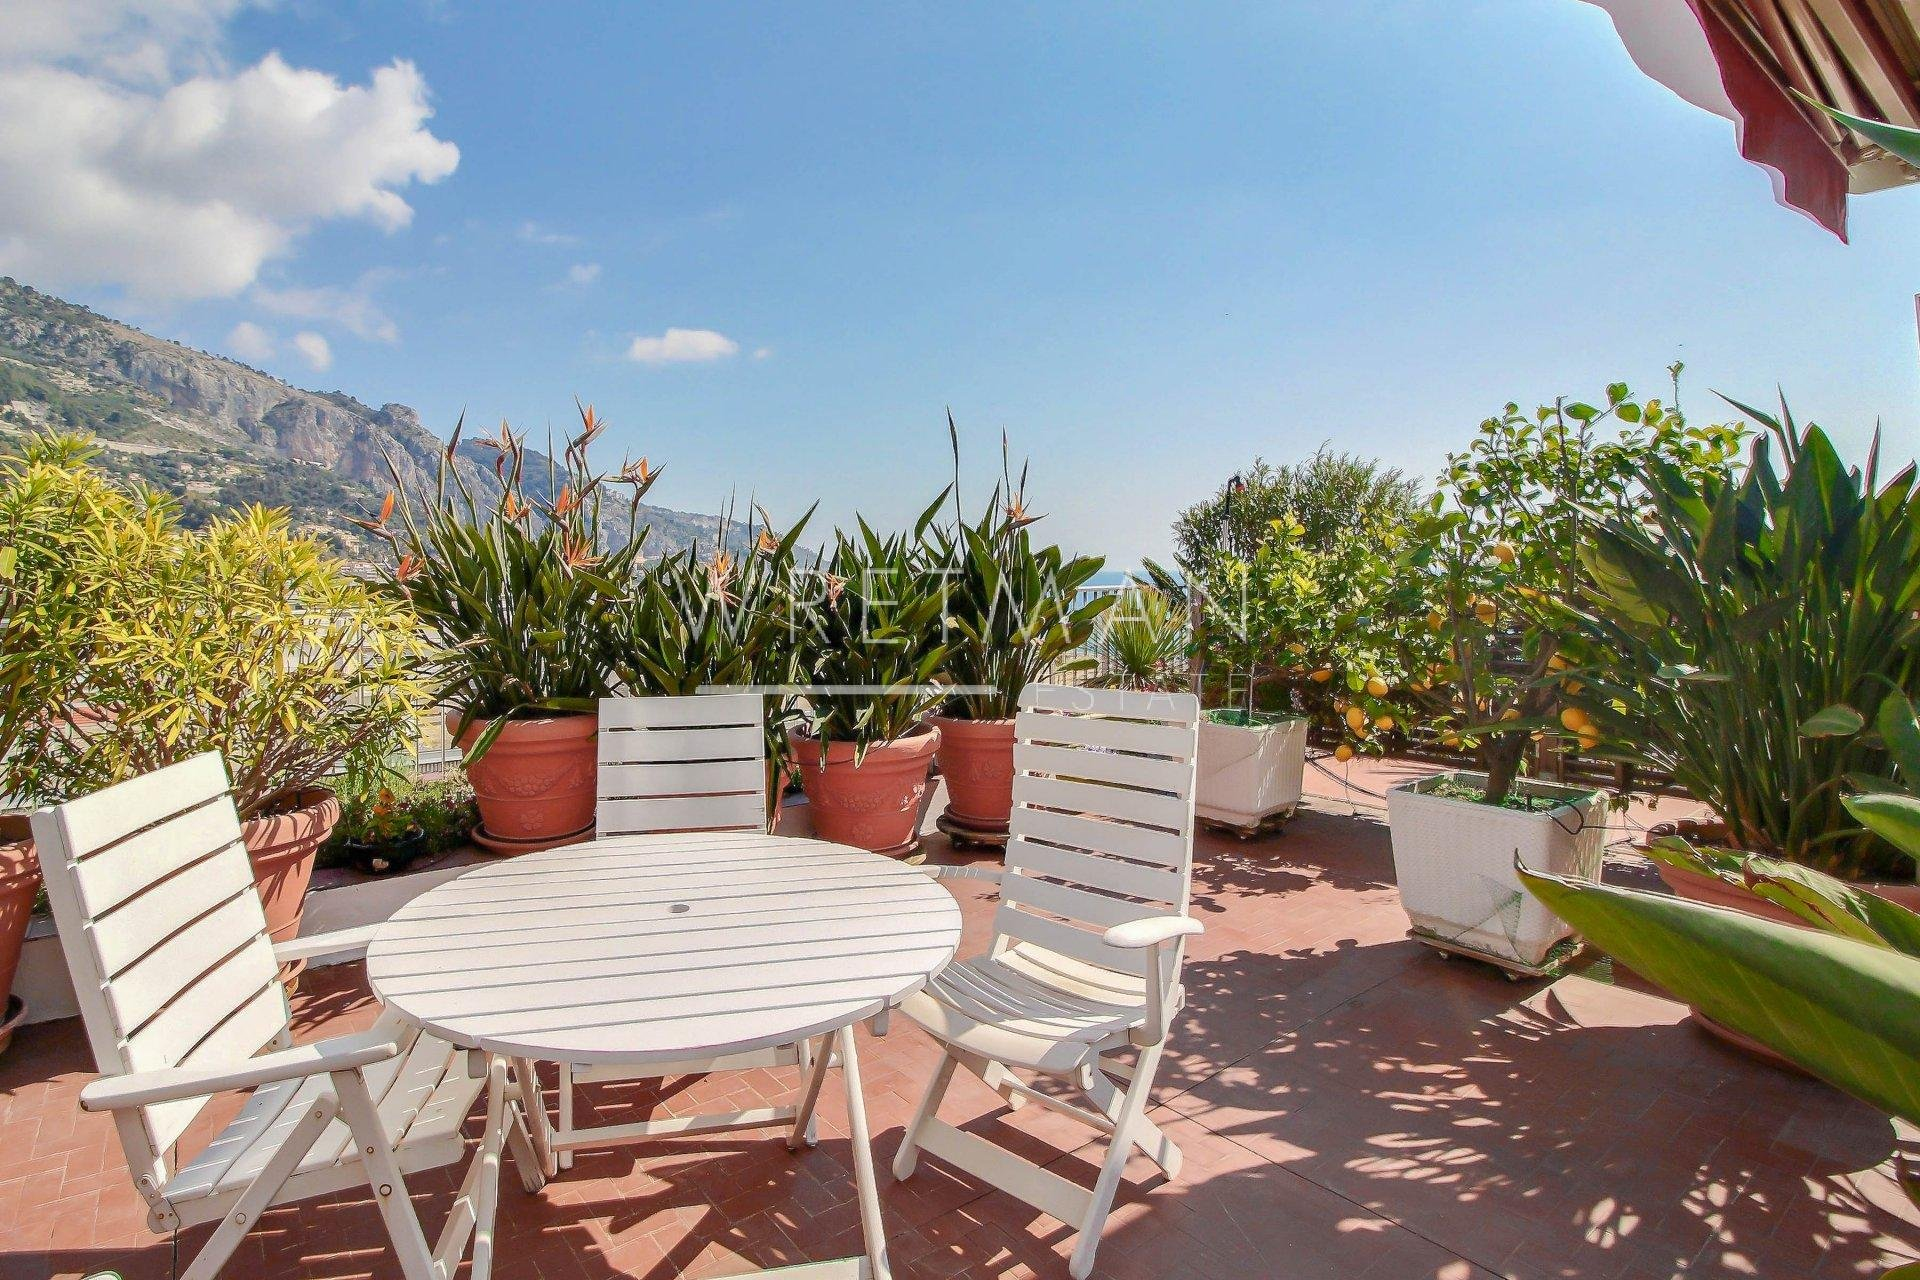 Toit Terrasse Hotel Nice 3 Room Apartment With Amazing View Menton Garavan